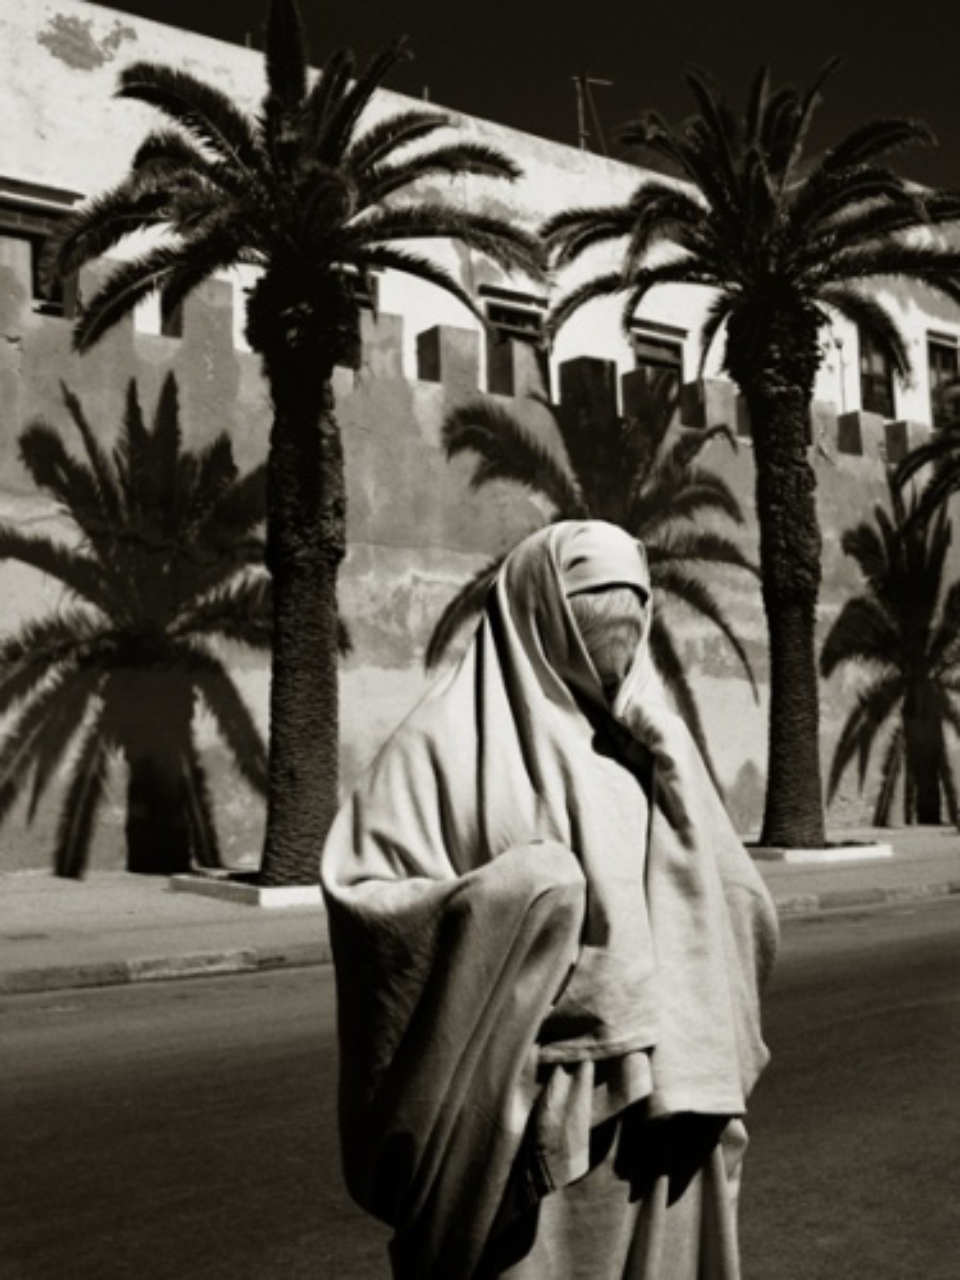 Albert Watson: Halima Ben Taj Essaouira, Morocco, 1998 Archival pigment print Signed, titled, dated and numbered on verso 76 x 61 cm Ed. 25